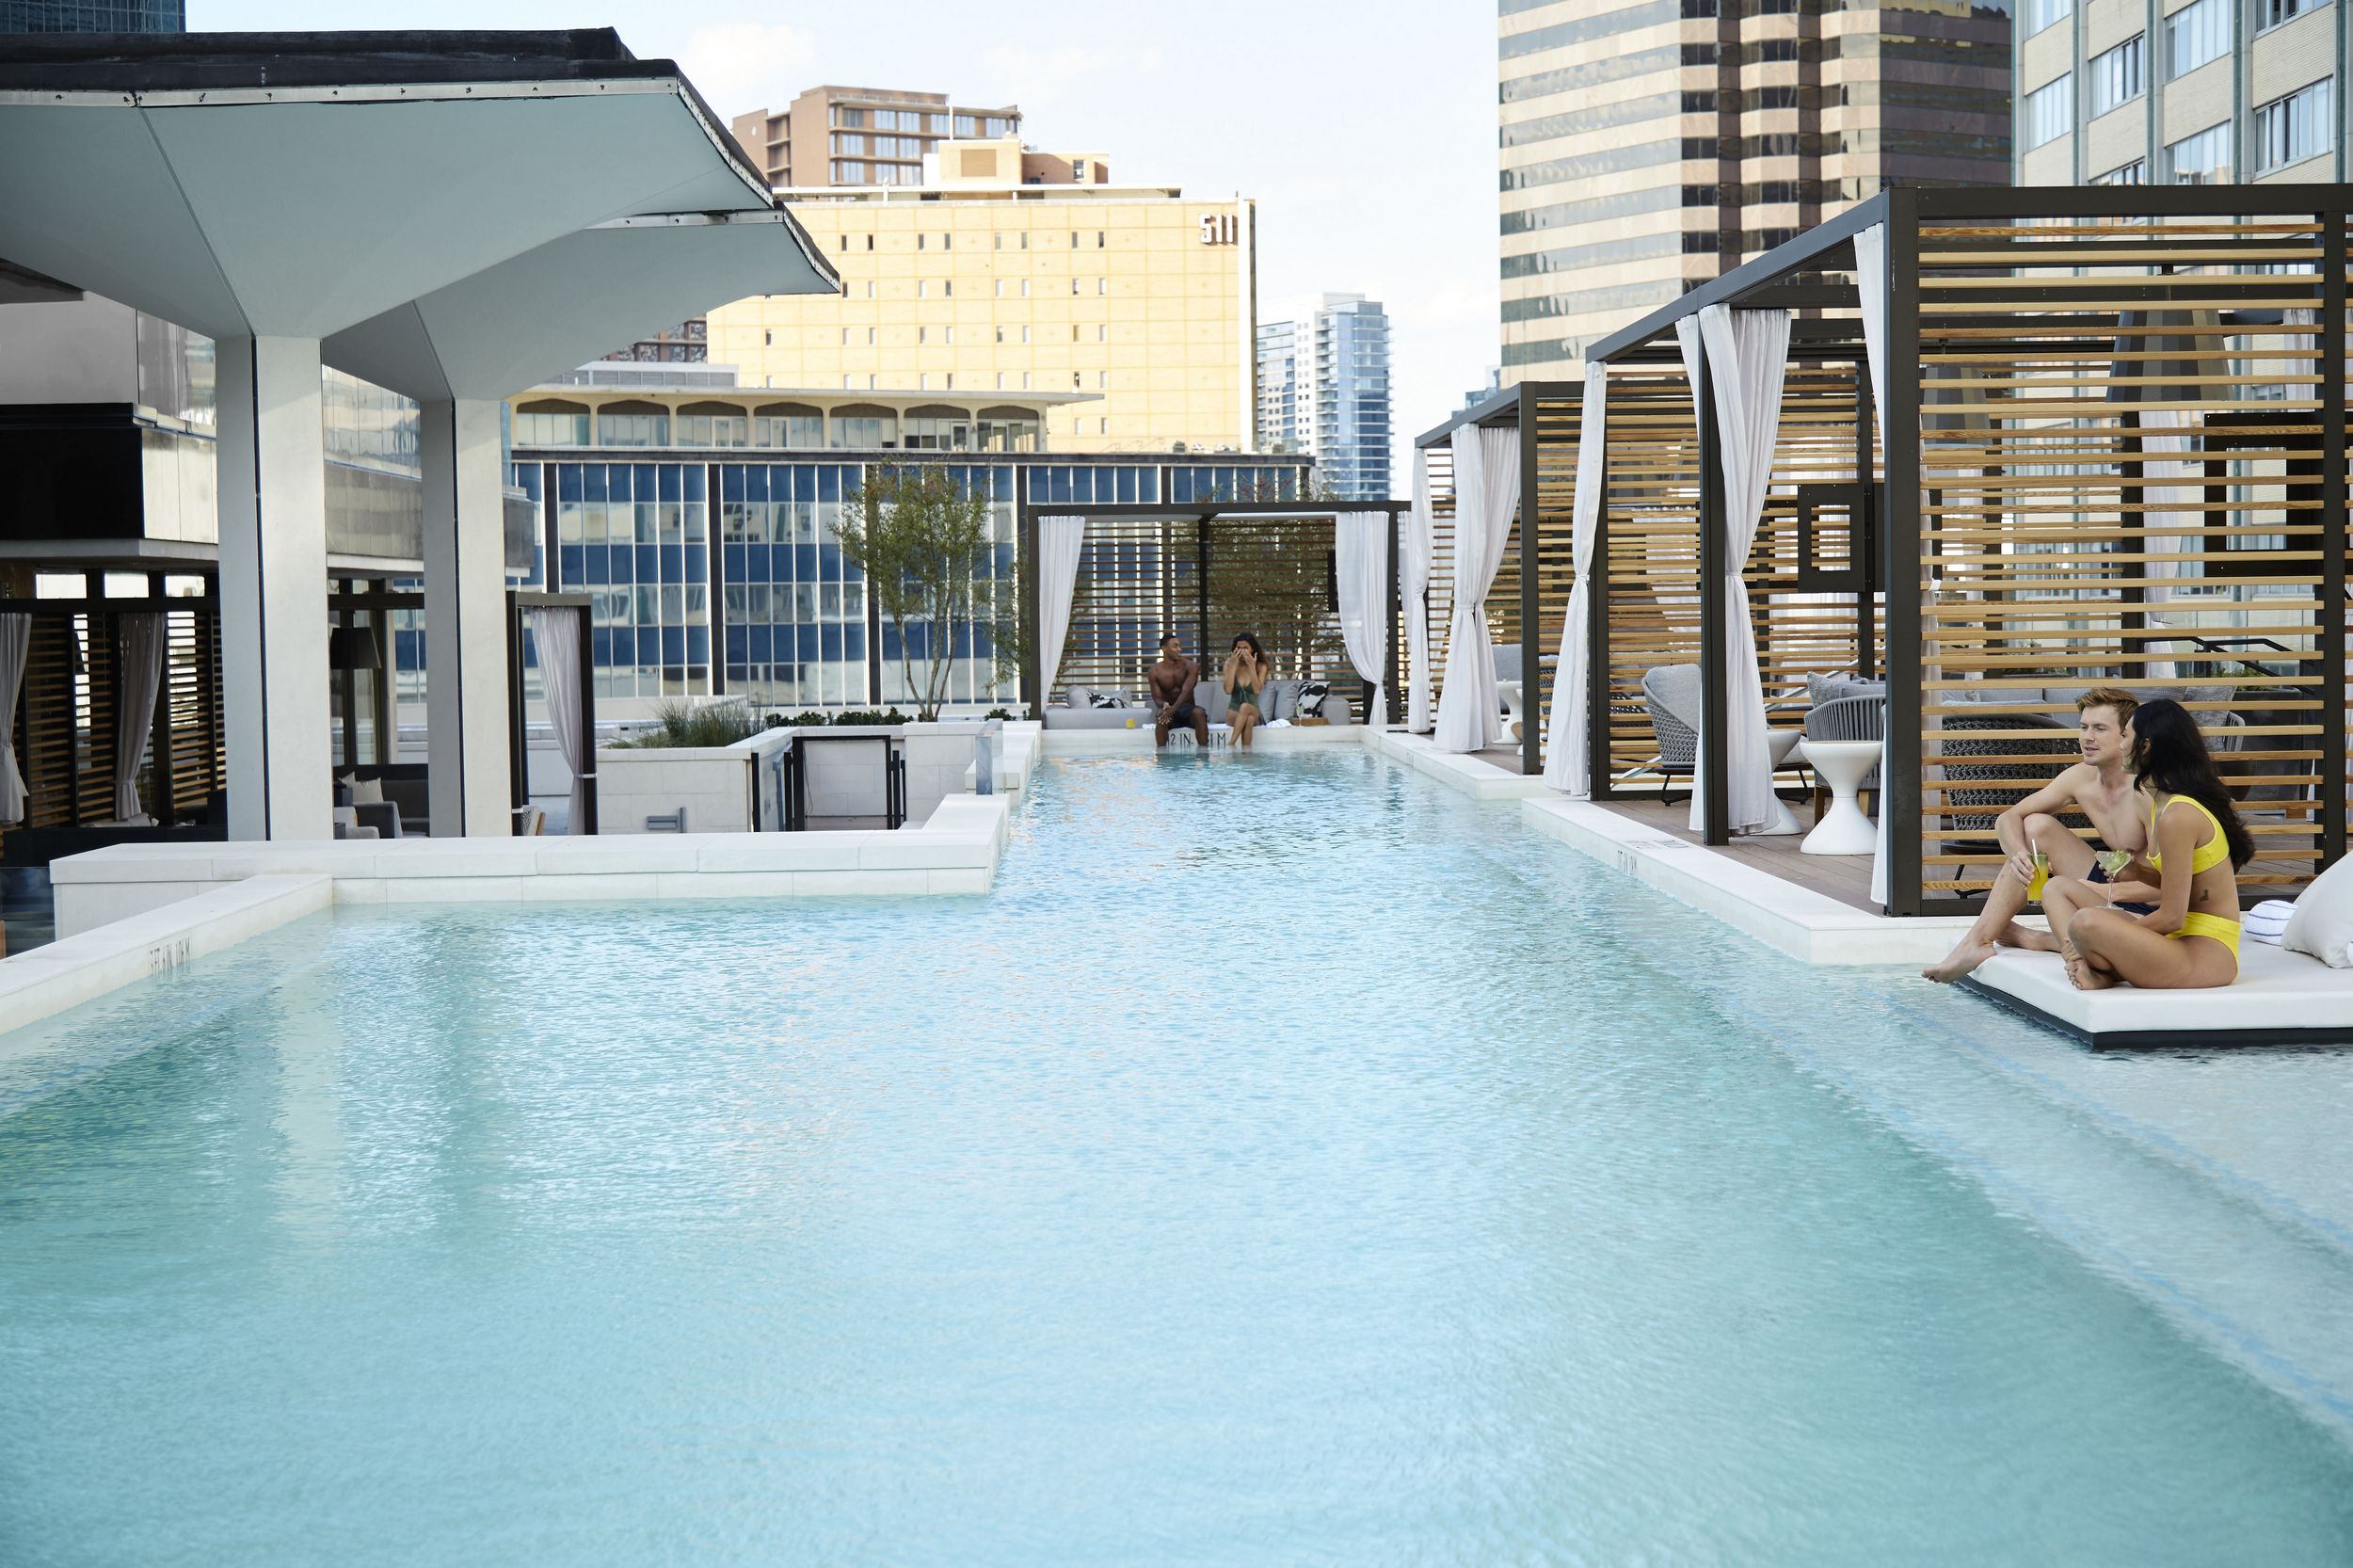 Rooftop swimming pool with seating and cabanas